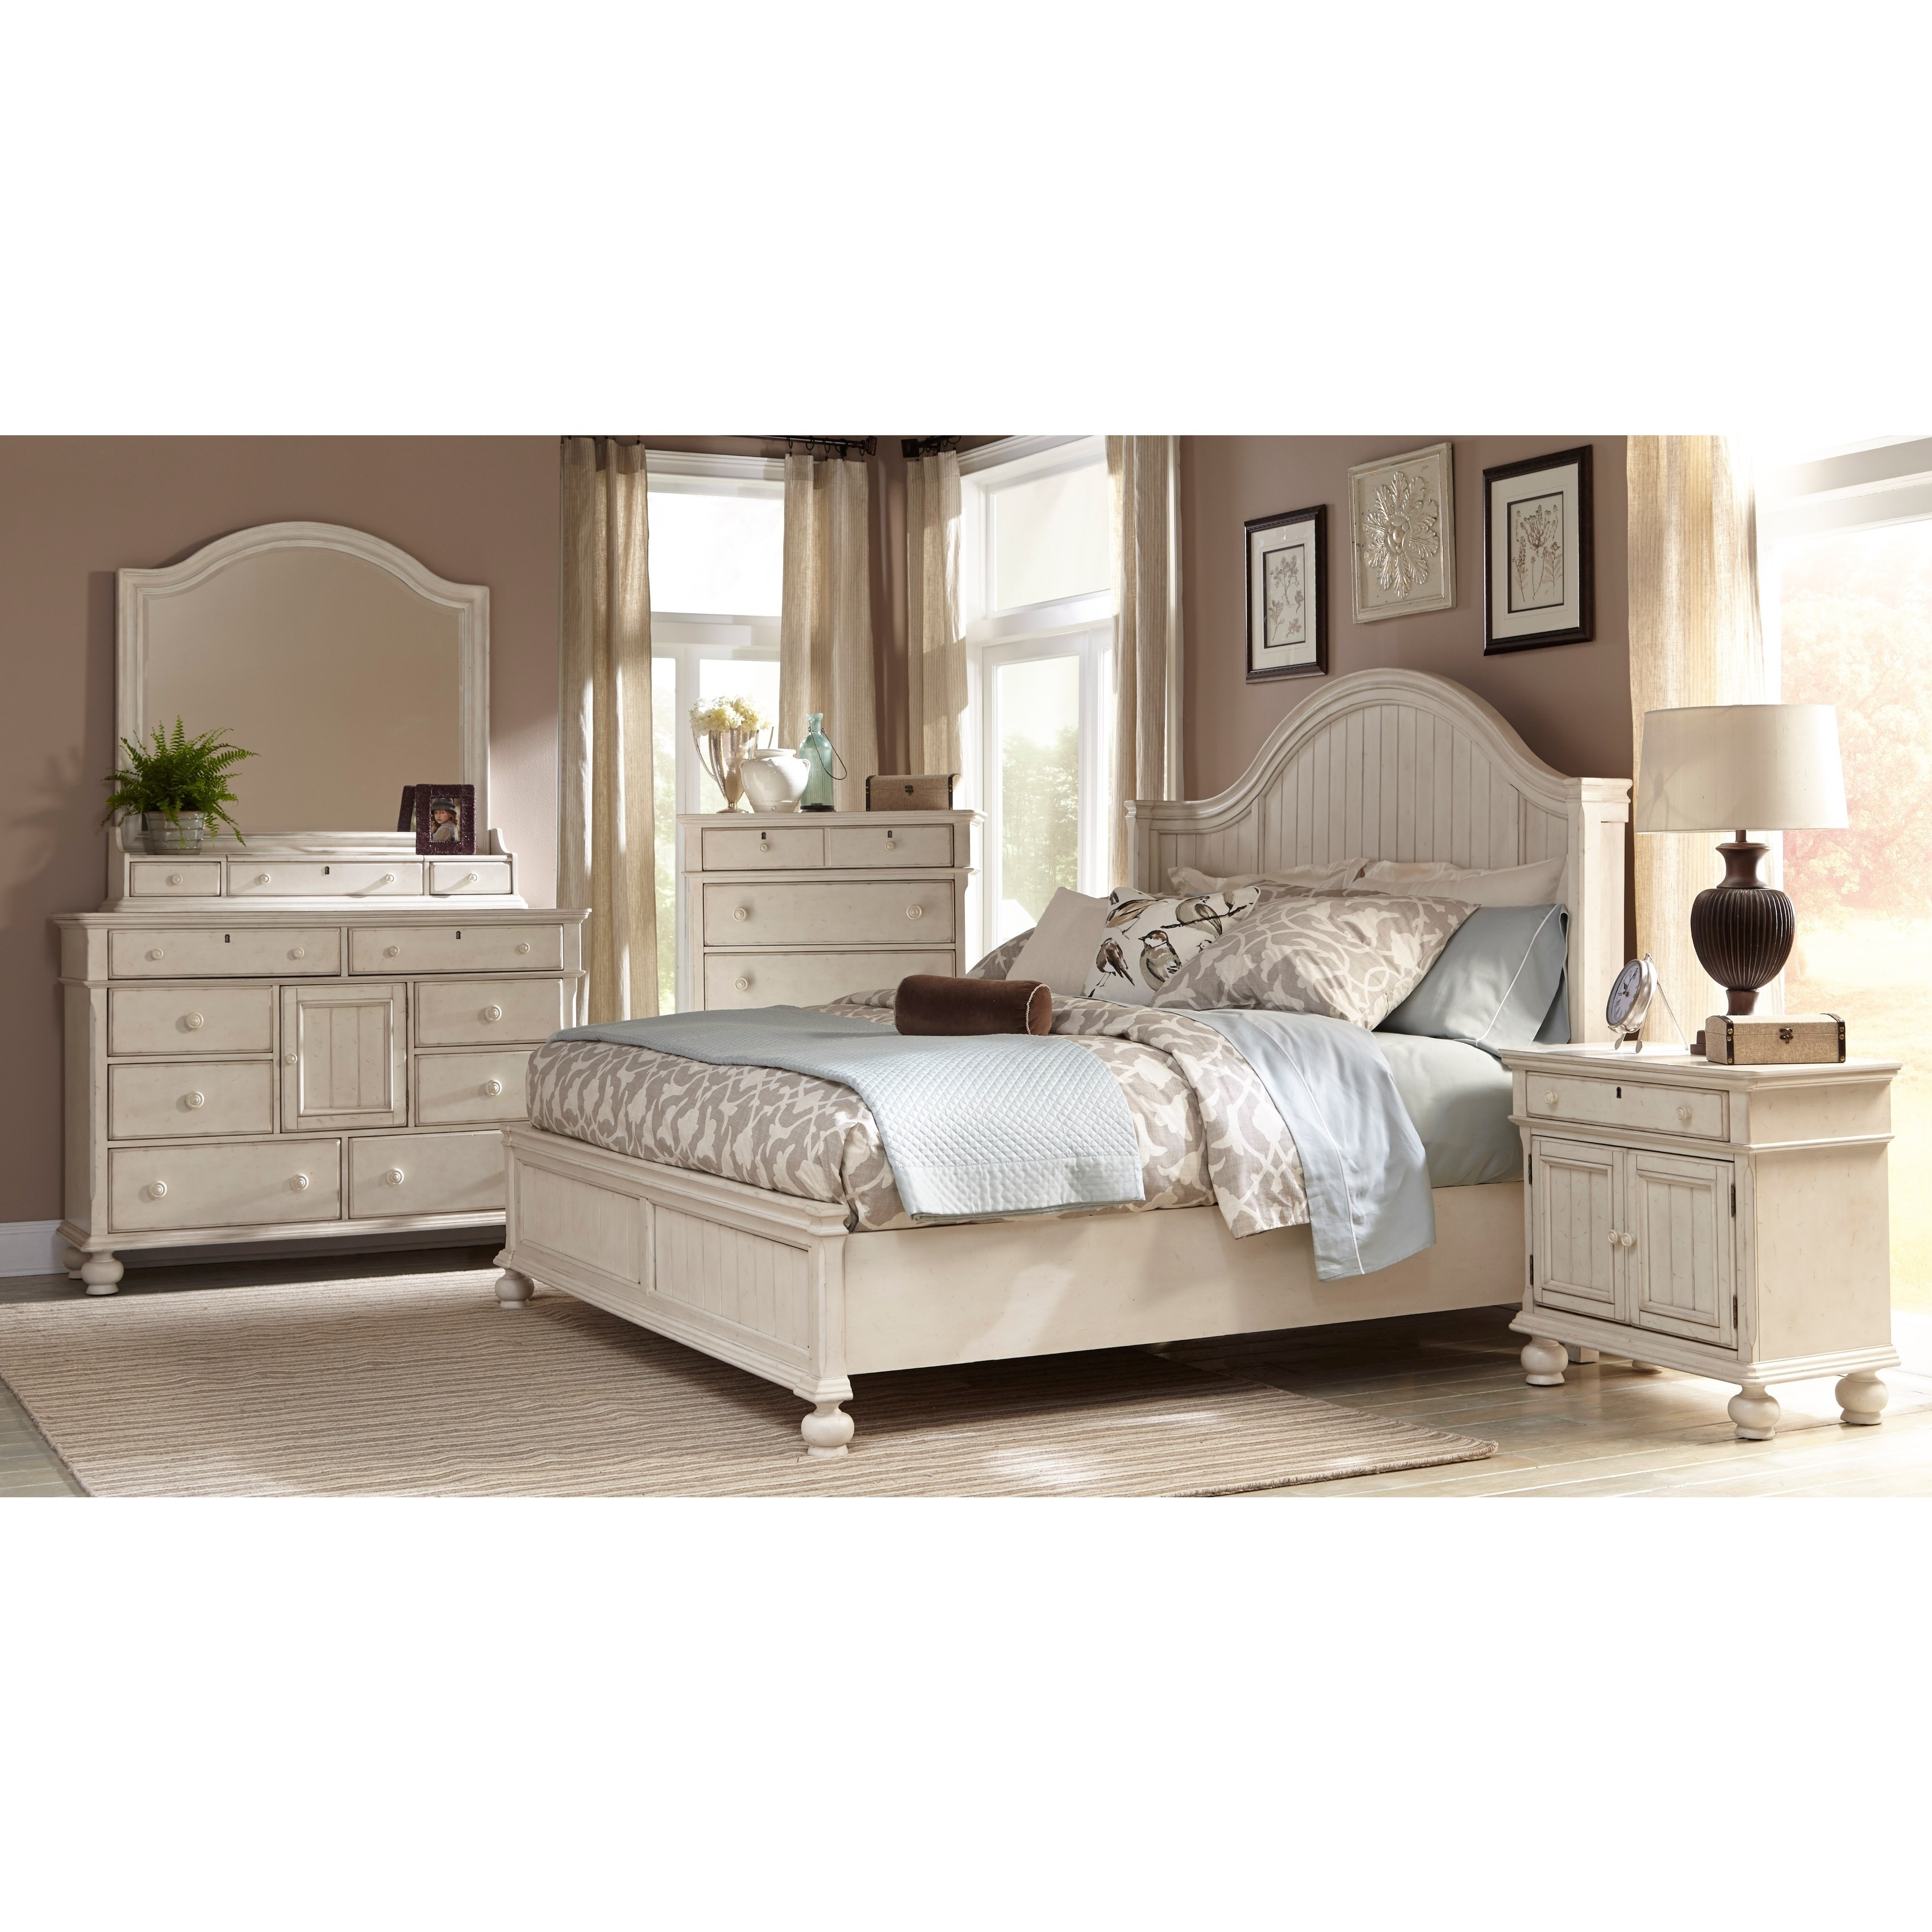 https://ak1.ostkcdn.com//images/products/10066317/Laguna-Antique-White-Panel-Bed-6-piece-Bedroom-Set-by-Greyson-Living-15ced2cc-eb8a-4b22-a07d-c20b14393387.jpg